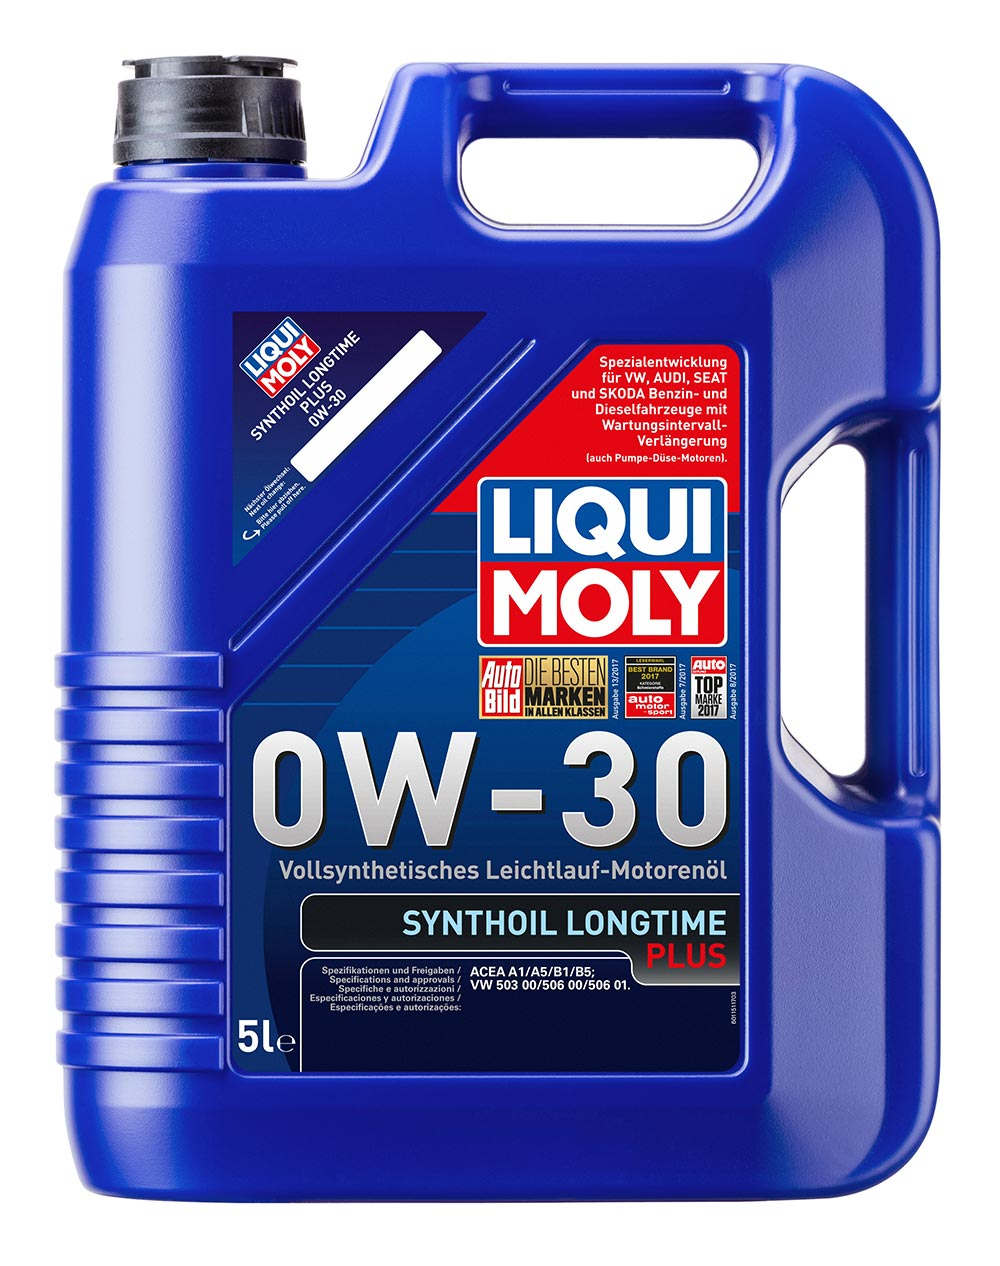 LiquiMoly 0W30 Synthoil Longtime Plus (5L) масло мотор  син ACEA A1 B1